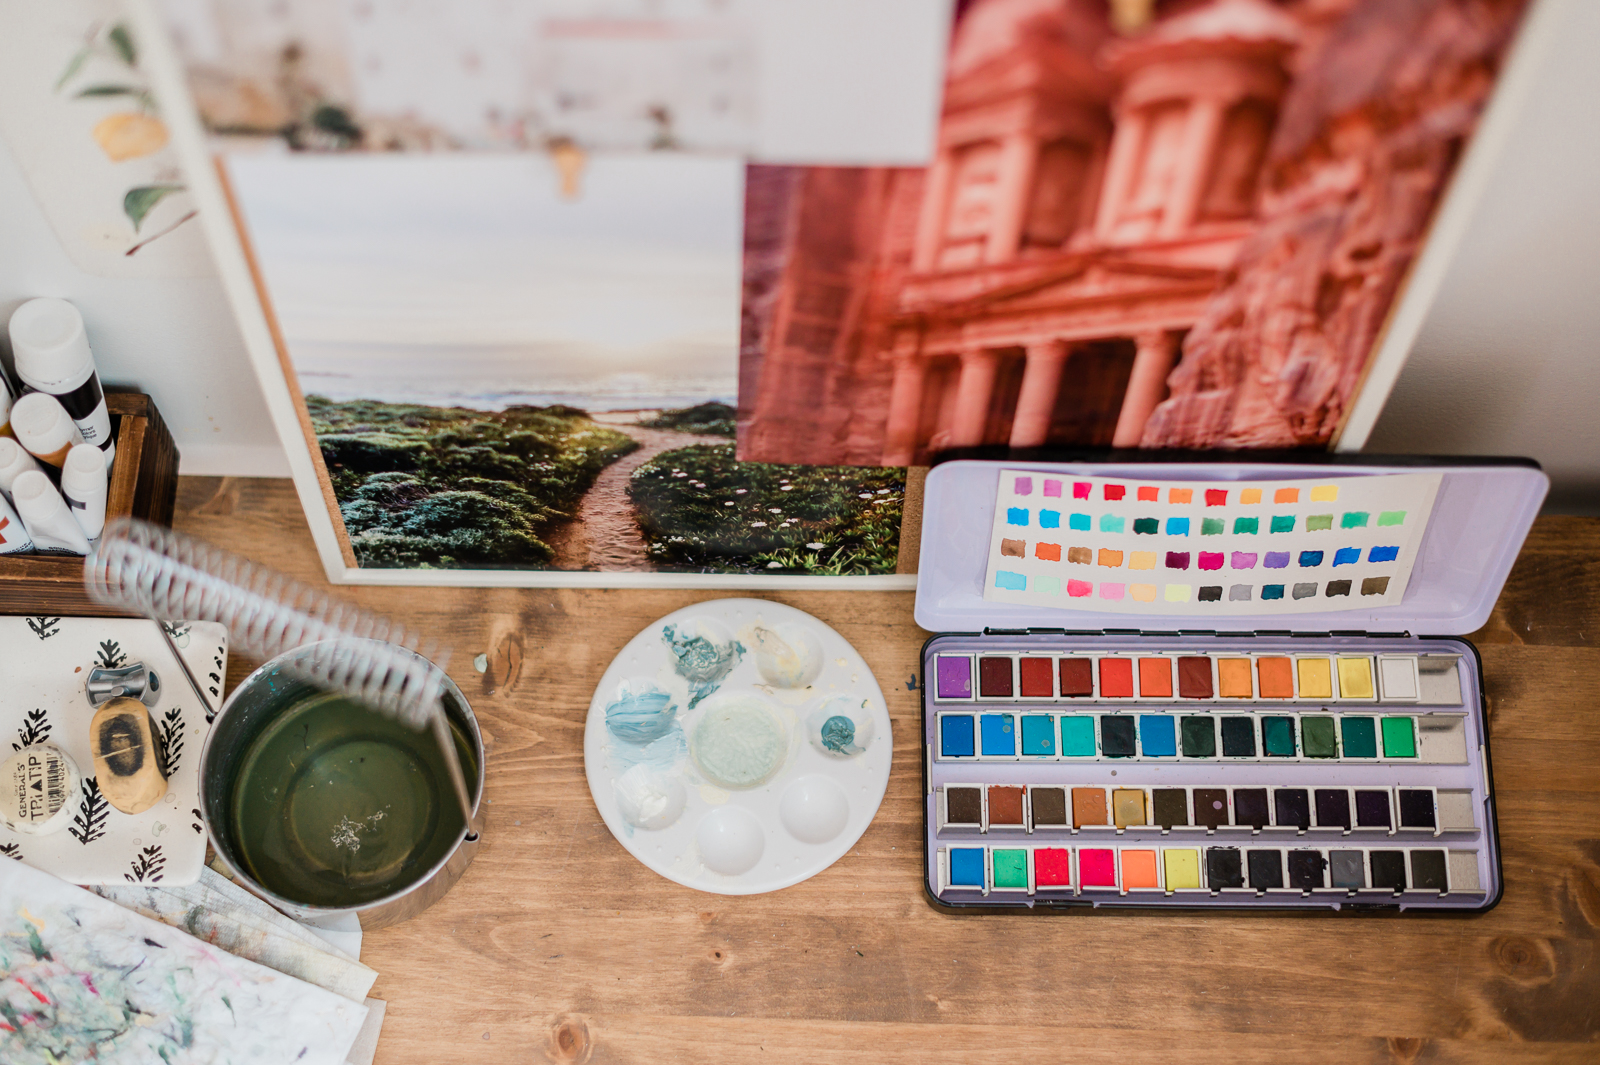 A desk has a palette of paints on it, with artwork in the background.